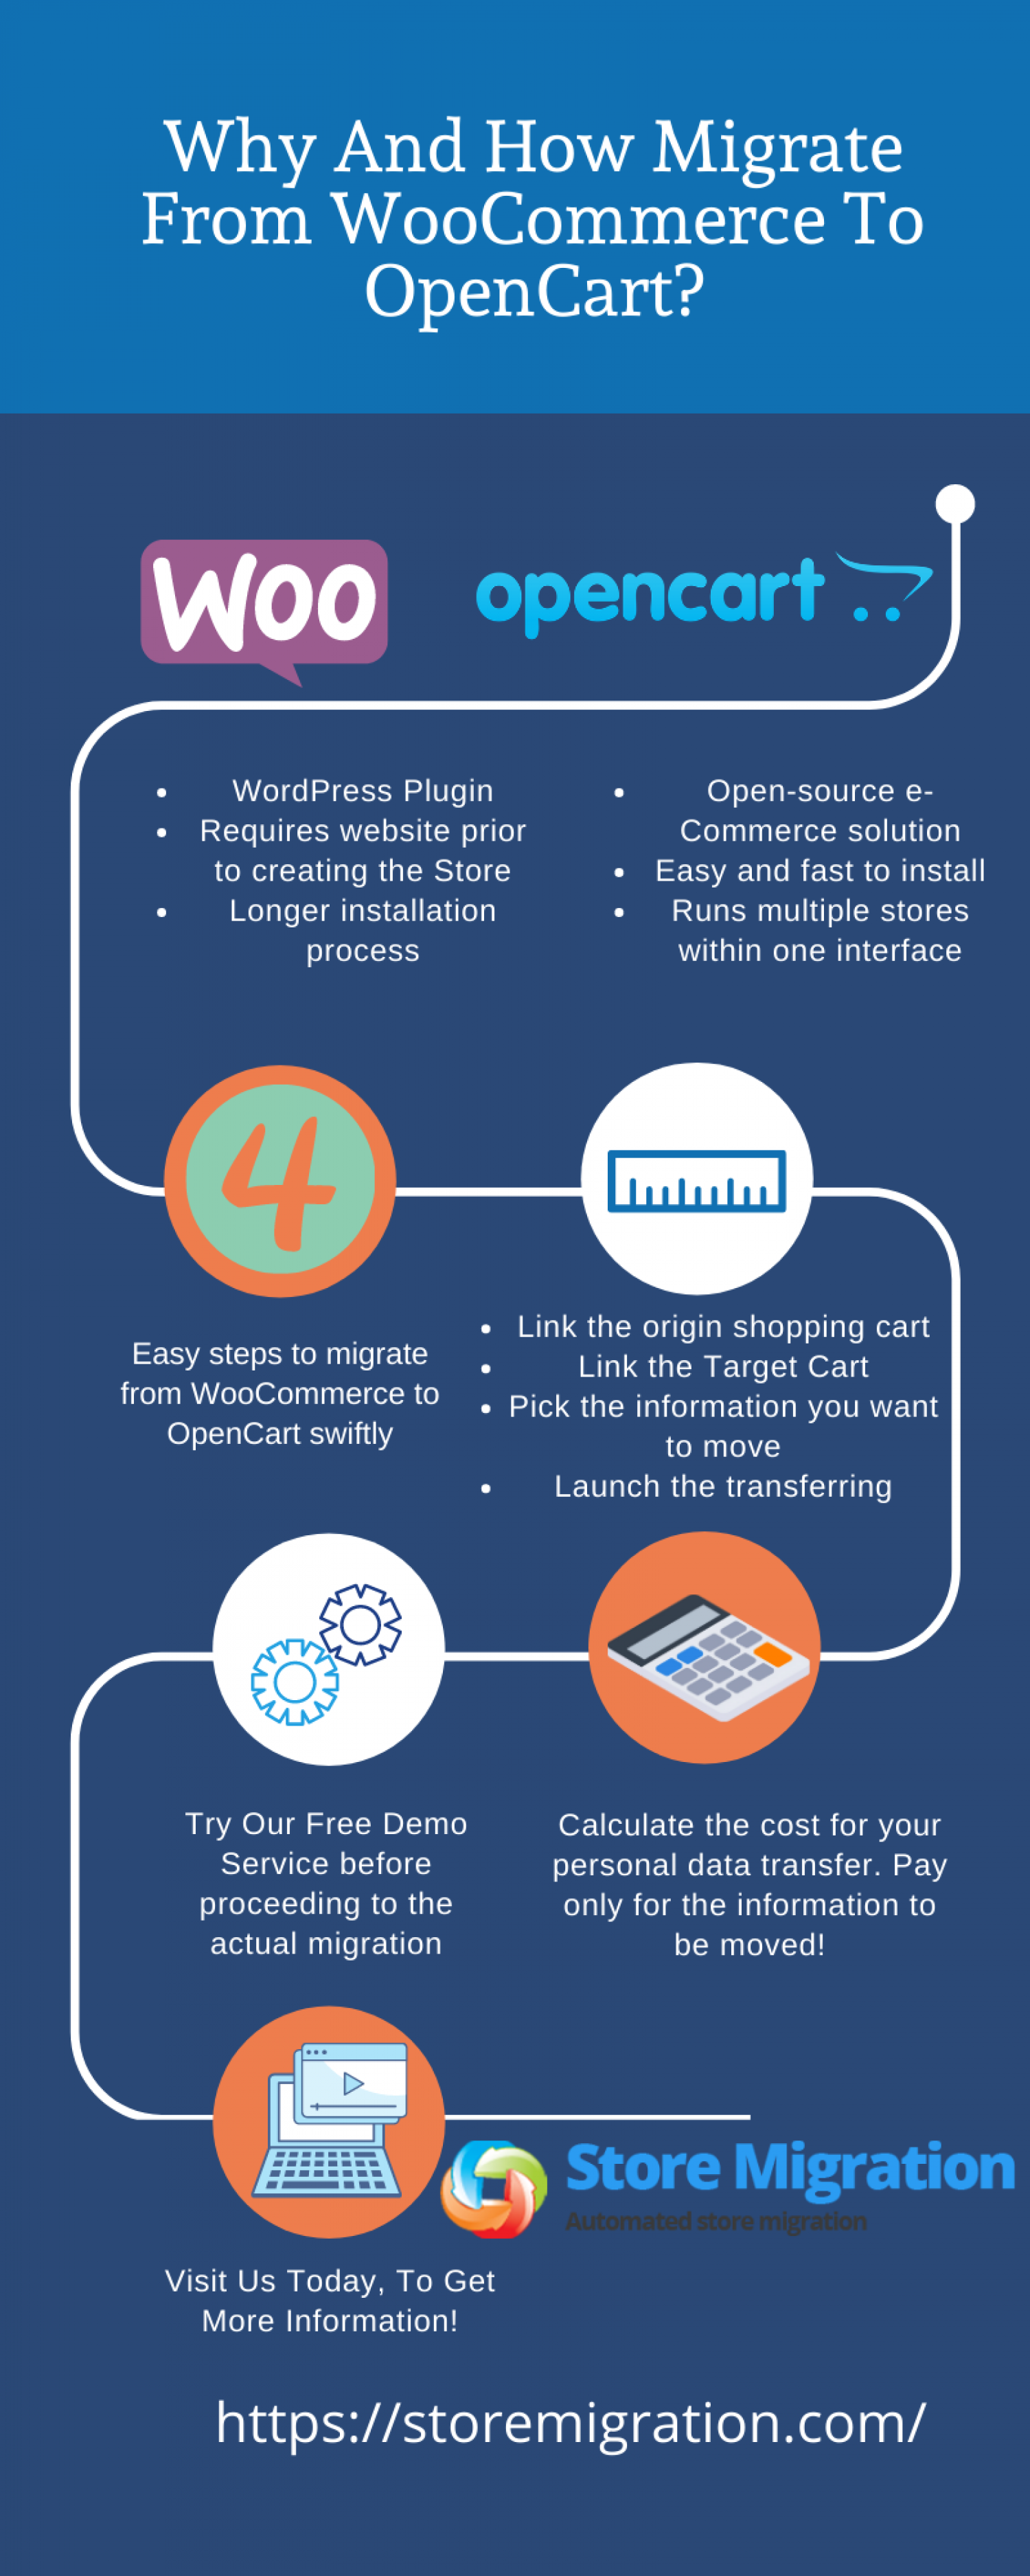 Why and How Migrate From WooCommerce to OpenCart Infographic